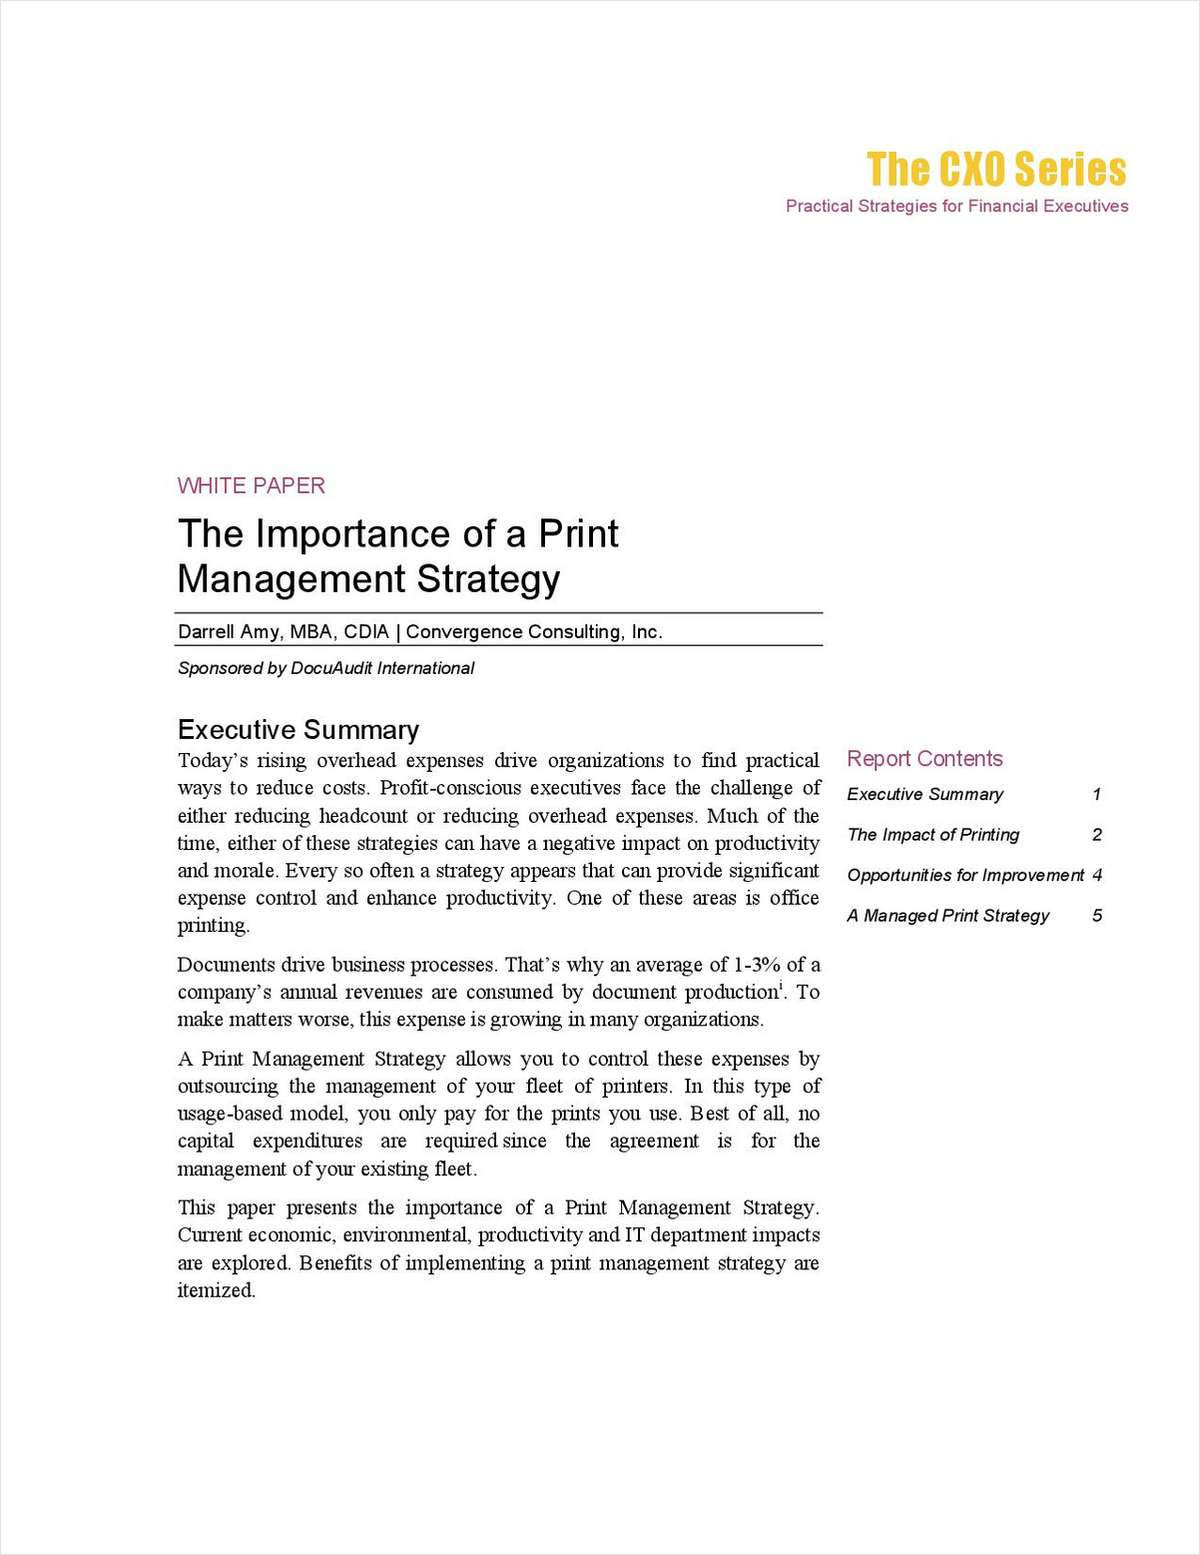 The Importance of a Print Management Strategy – And Why it Matters